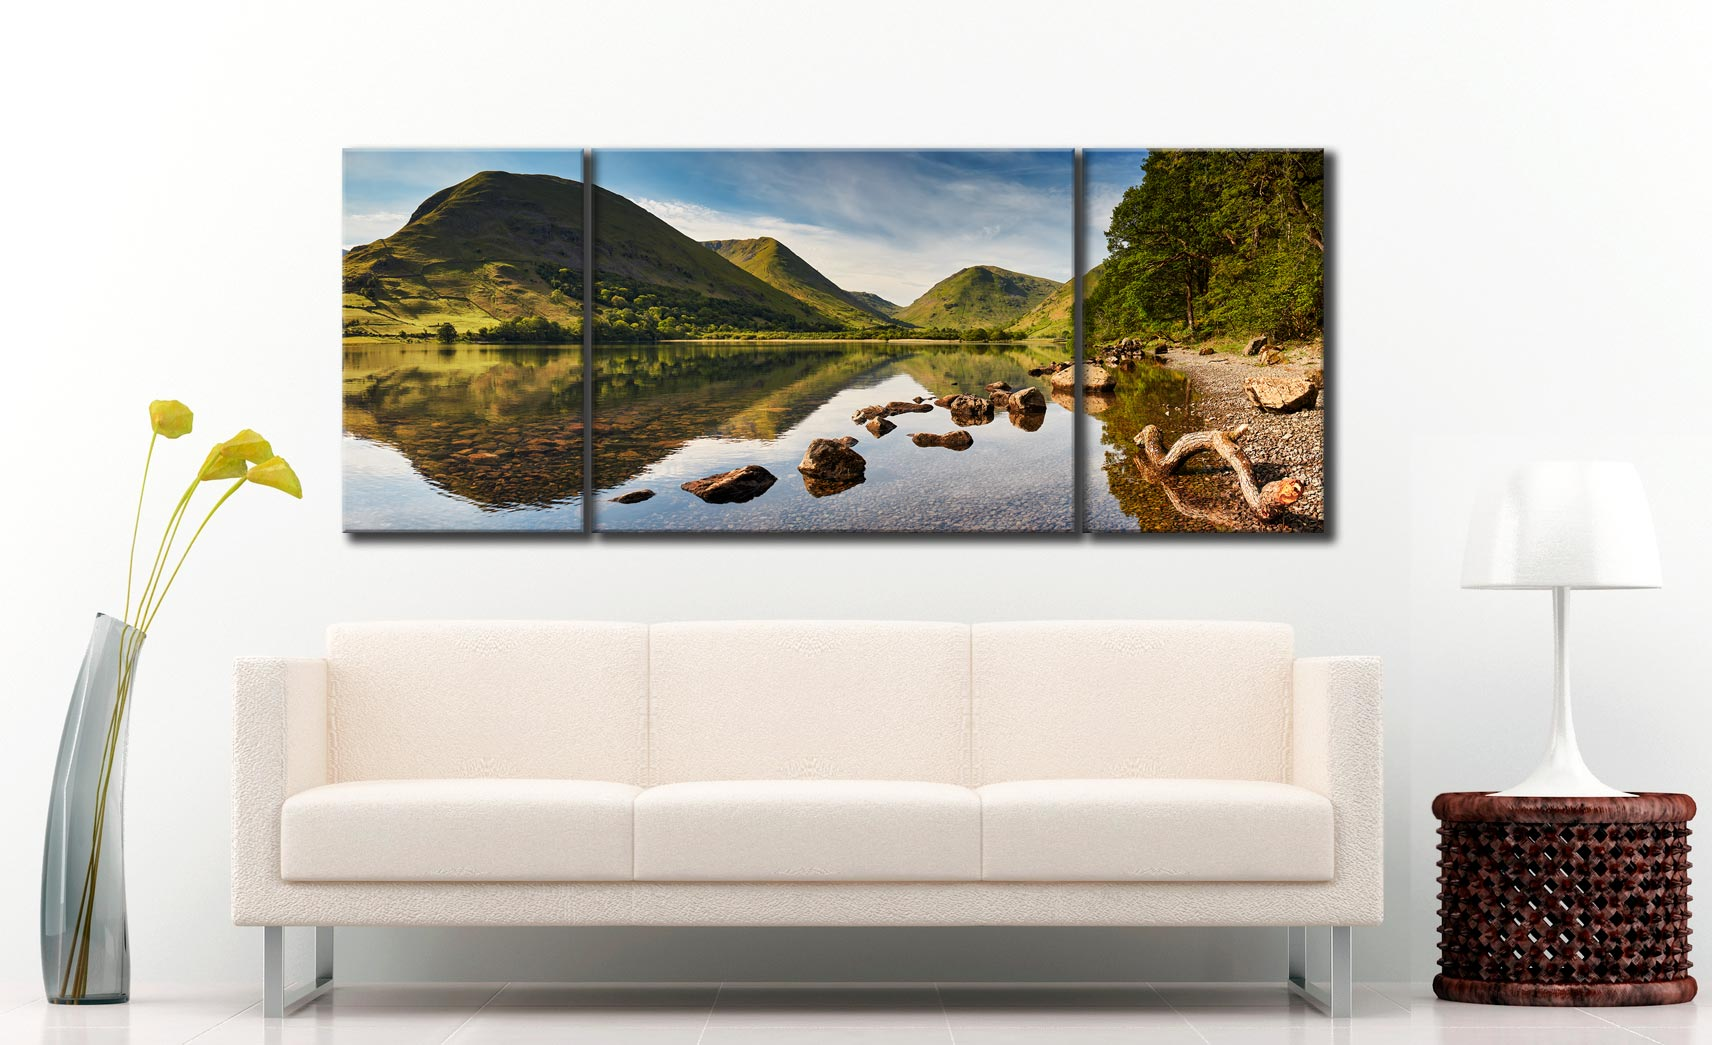 Brothers Water Reflections - 3 Panel Wide Mid Canvas on Wall